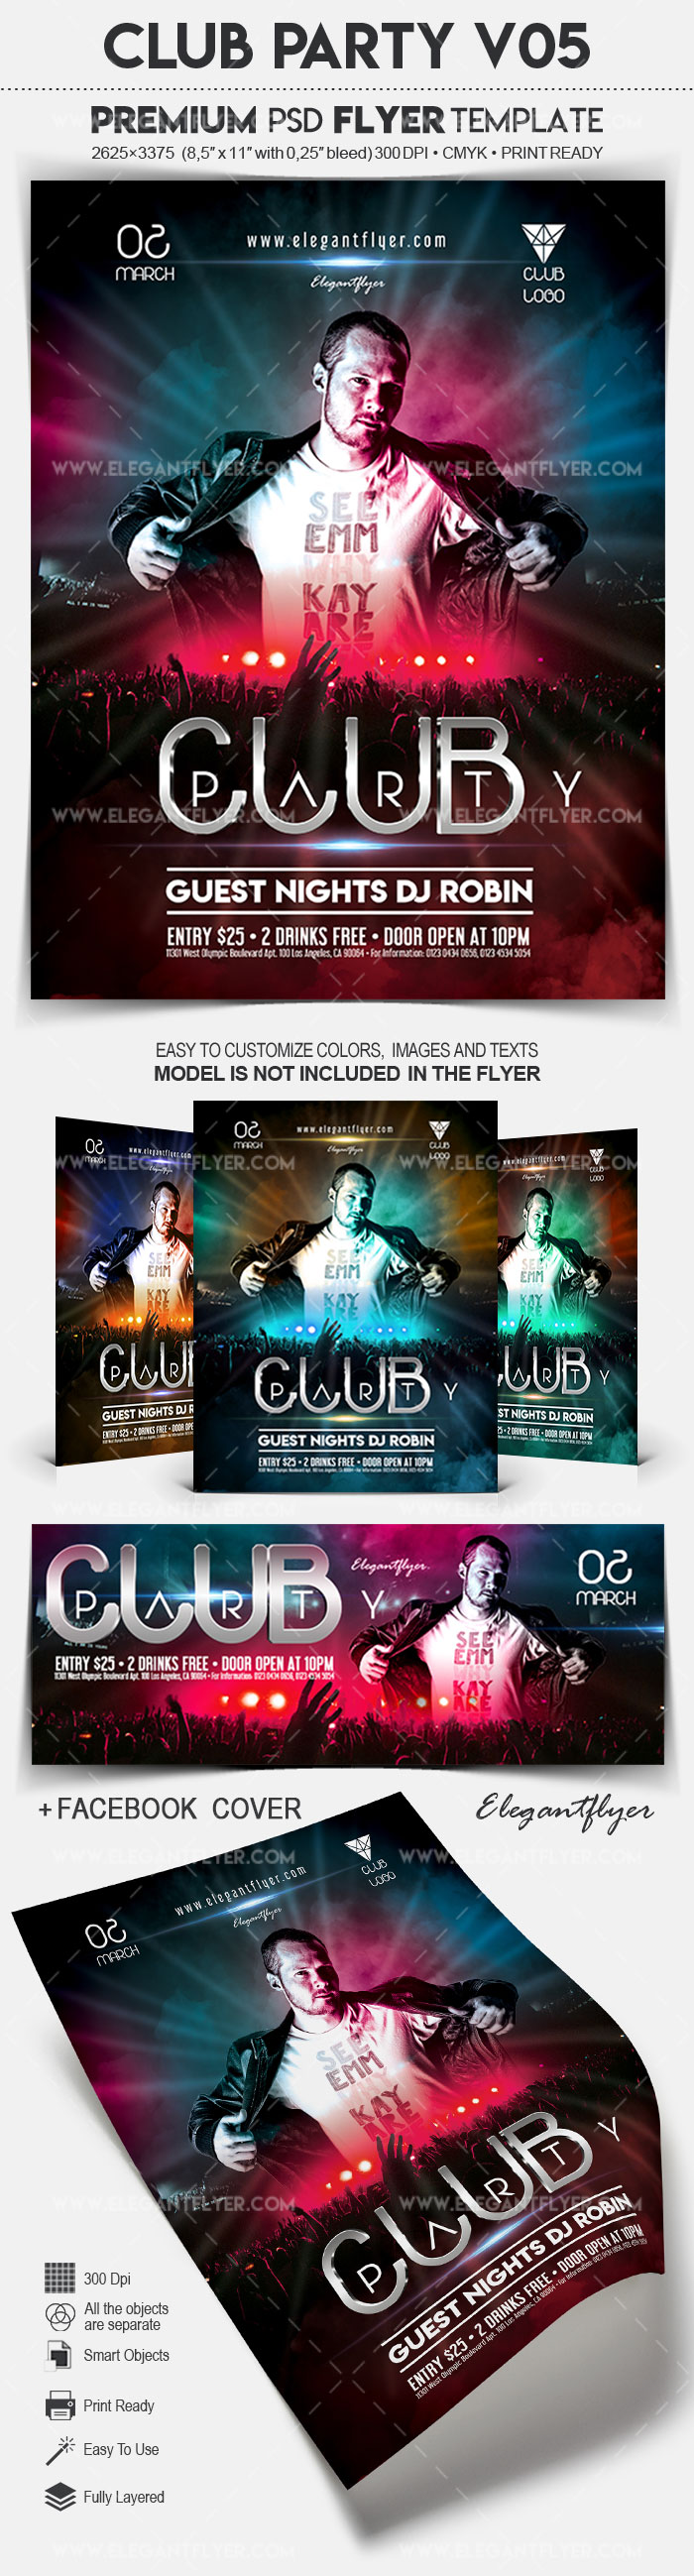 Club Party V05 – Flyer PSD Template + Facebook Cover